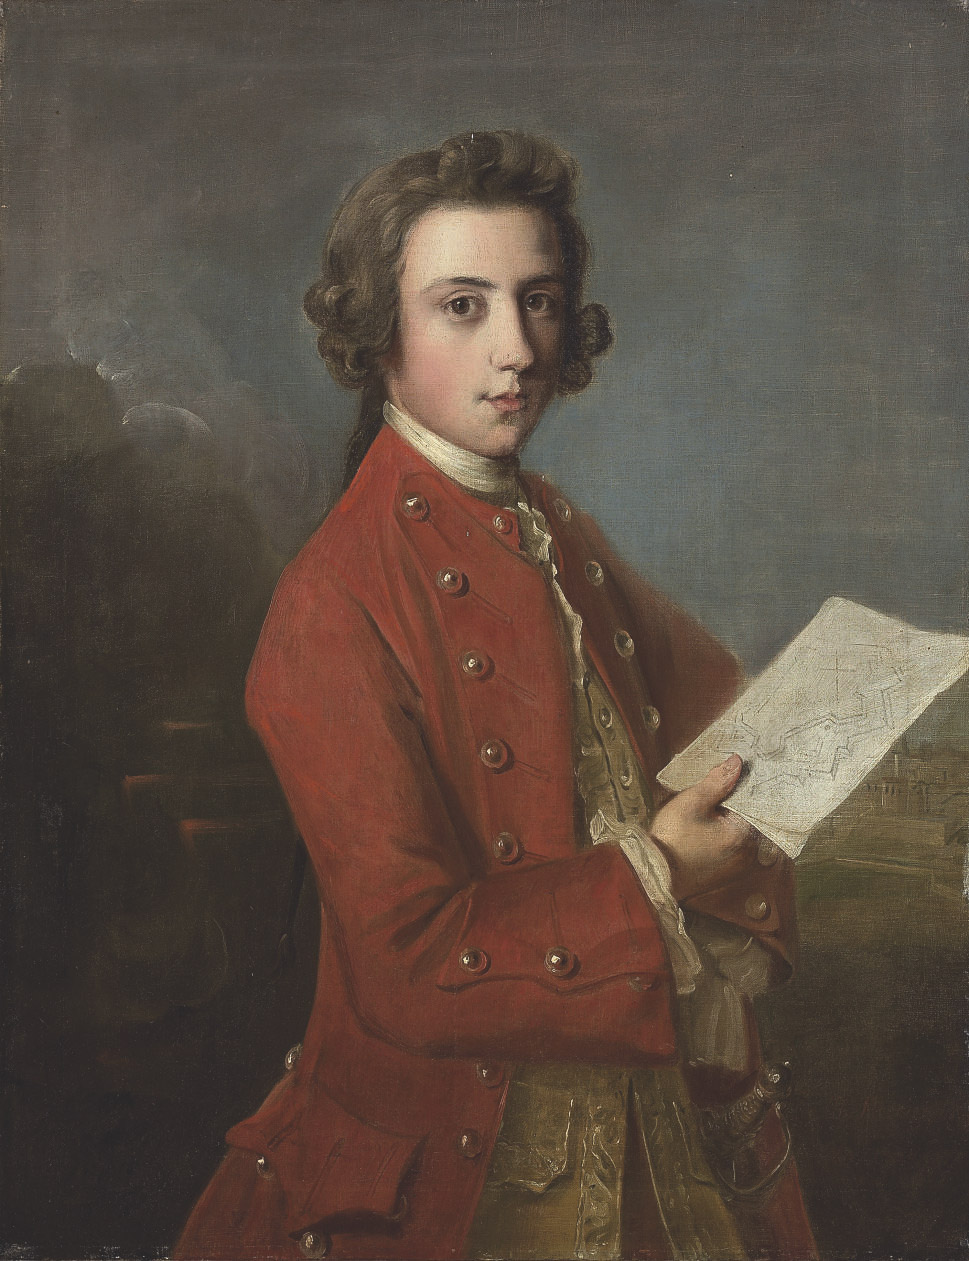 Portrait of a boy, said to be General James Wolfe, three-quarter-length, in a red coat, holding plans of fortifications